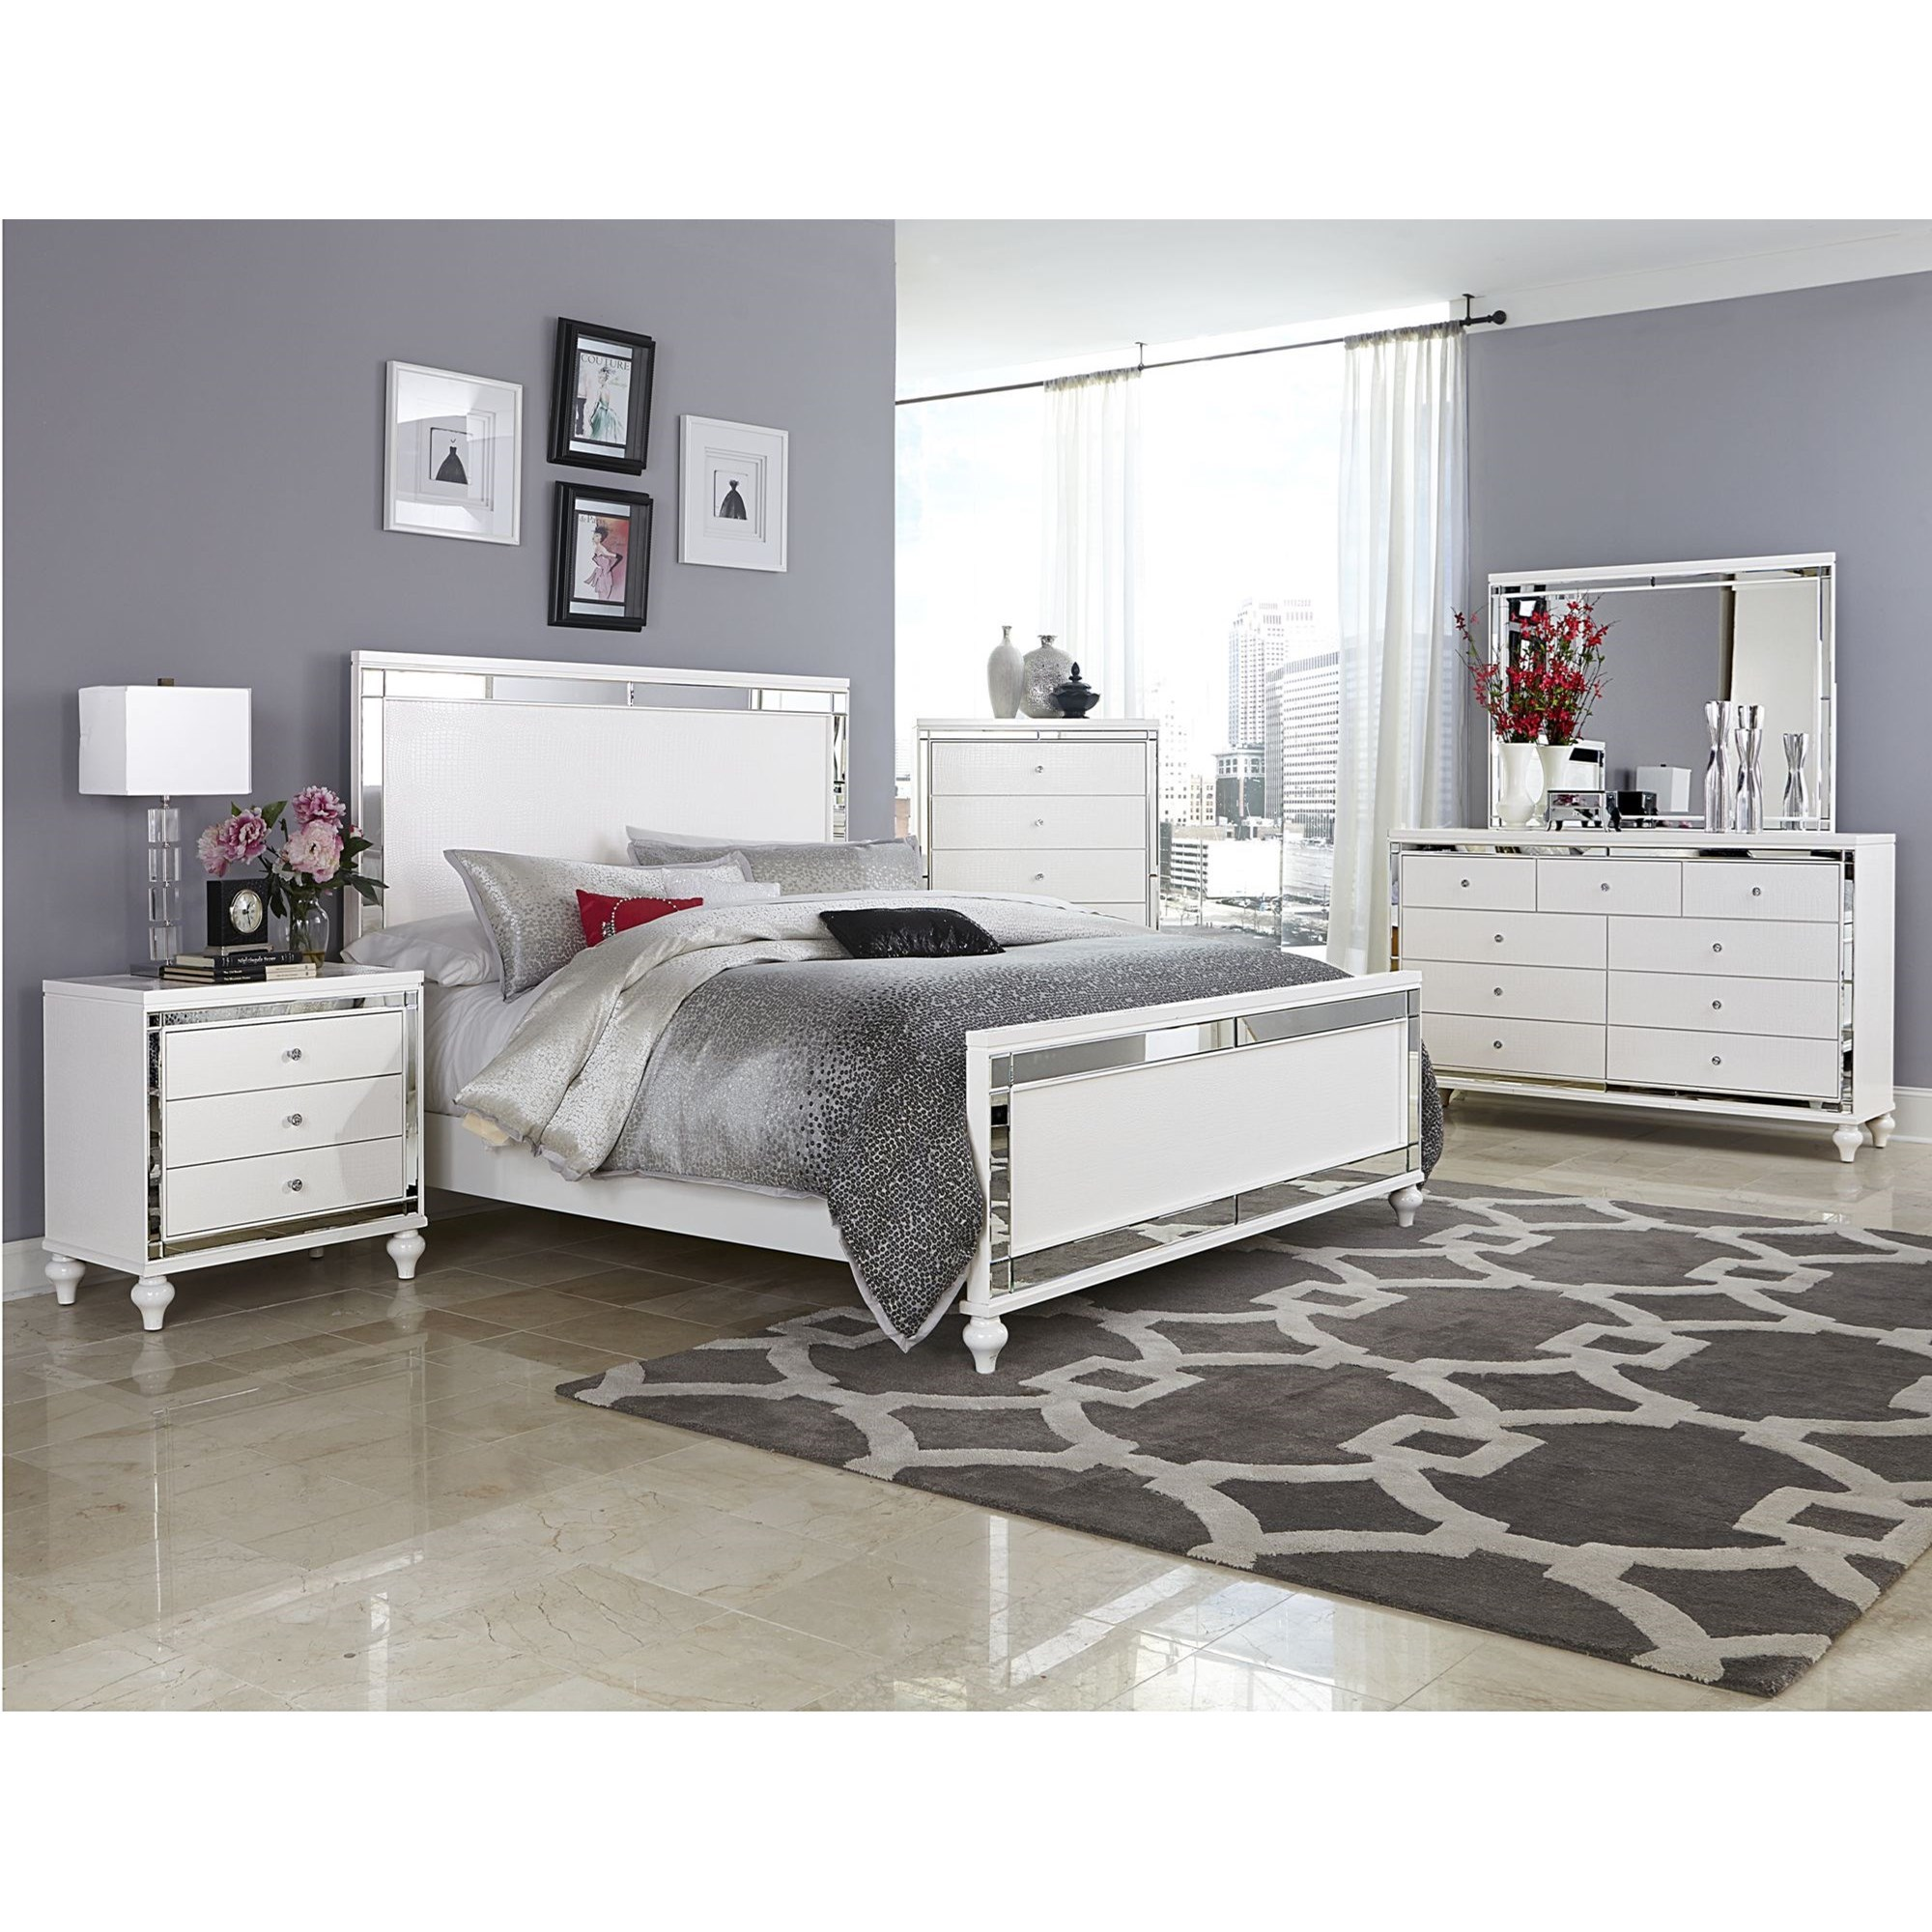 Alonza King Bedroom Group by Homelegance at Carolina Direct